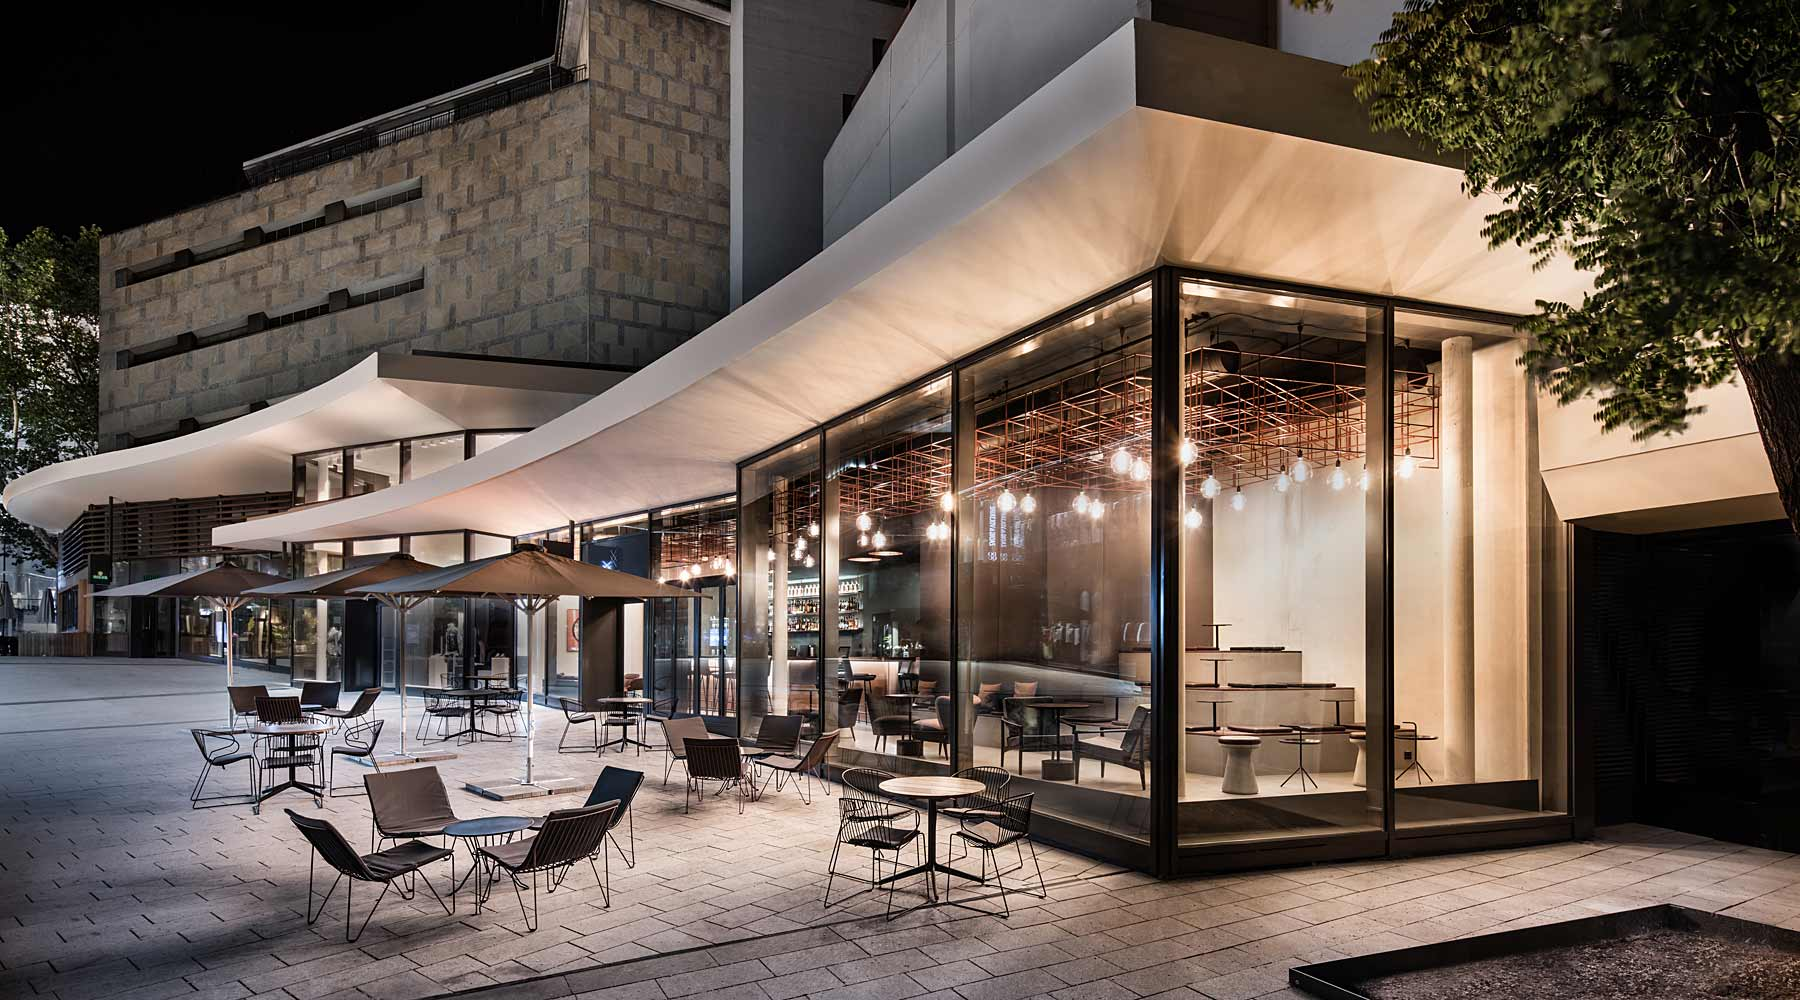 Eduard 39 s dorotheen quartier shopping essen trinken for Gastro architektur